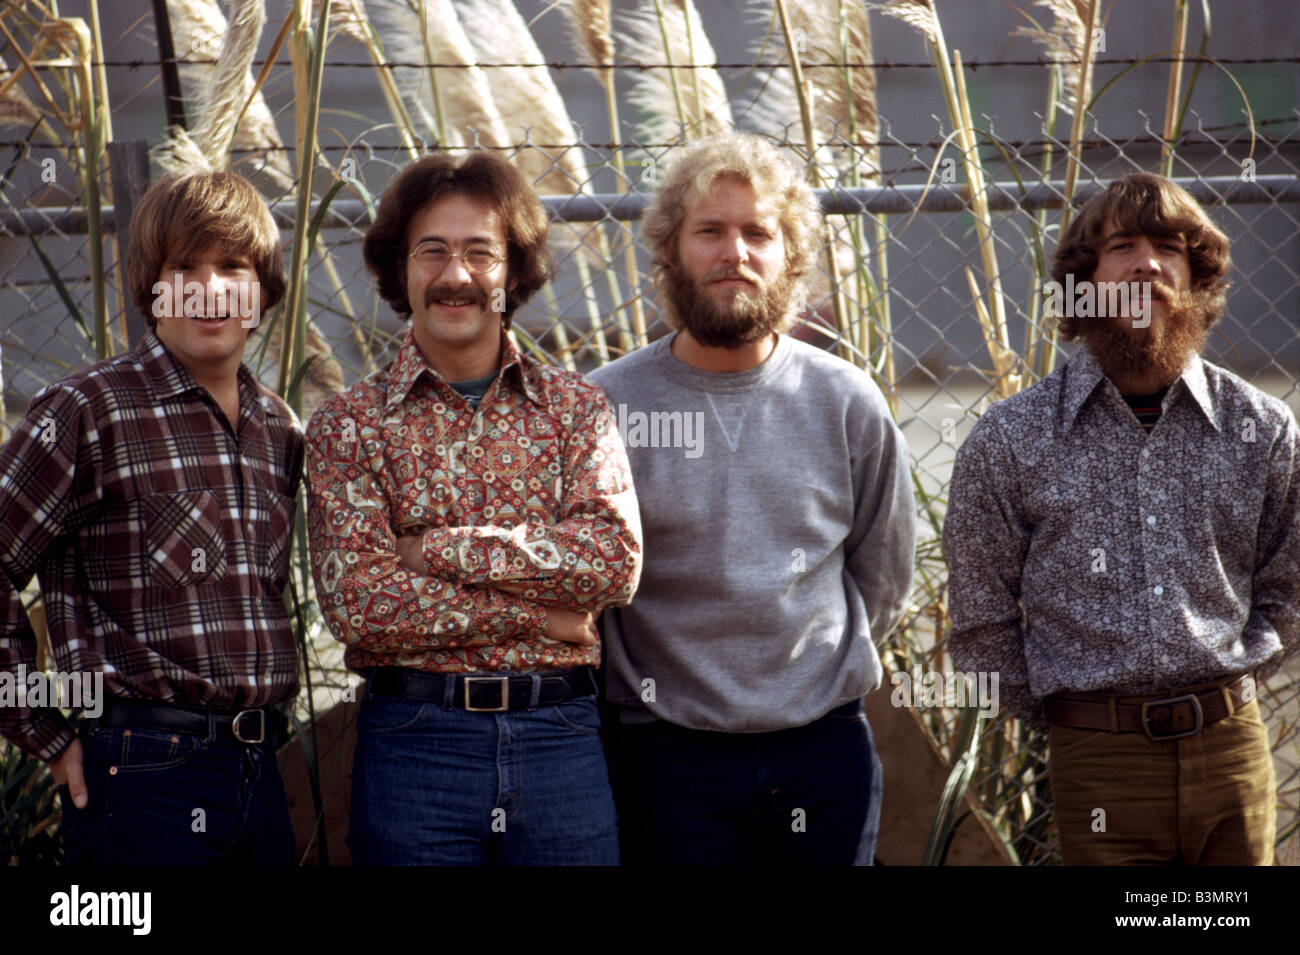 Credence Photo Creedence Clearwater Revival Us Pop Group In 1972 See